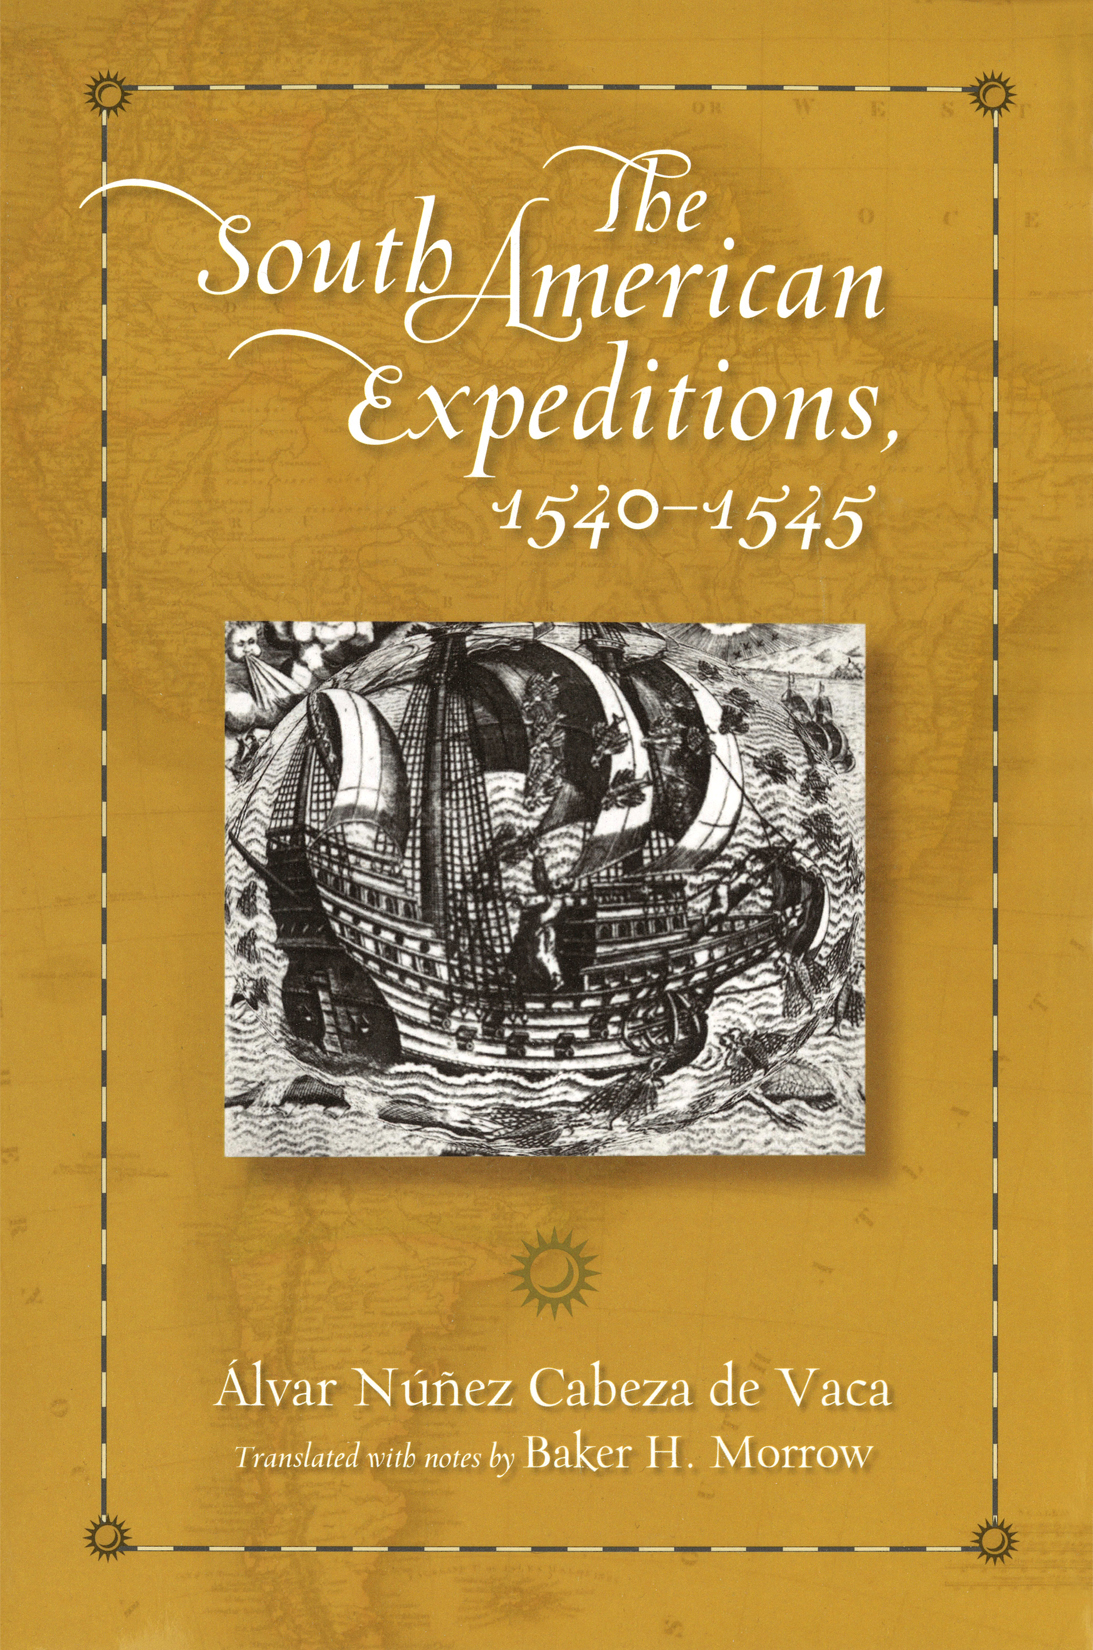 South American Expeditions.jpg